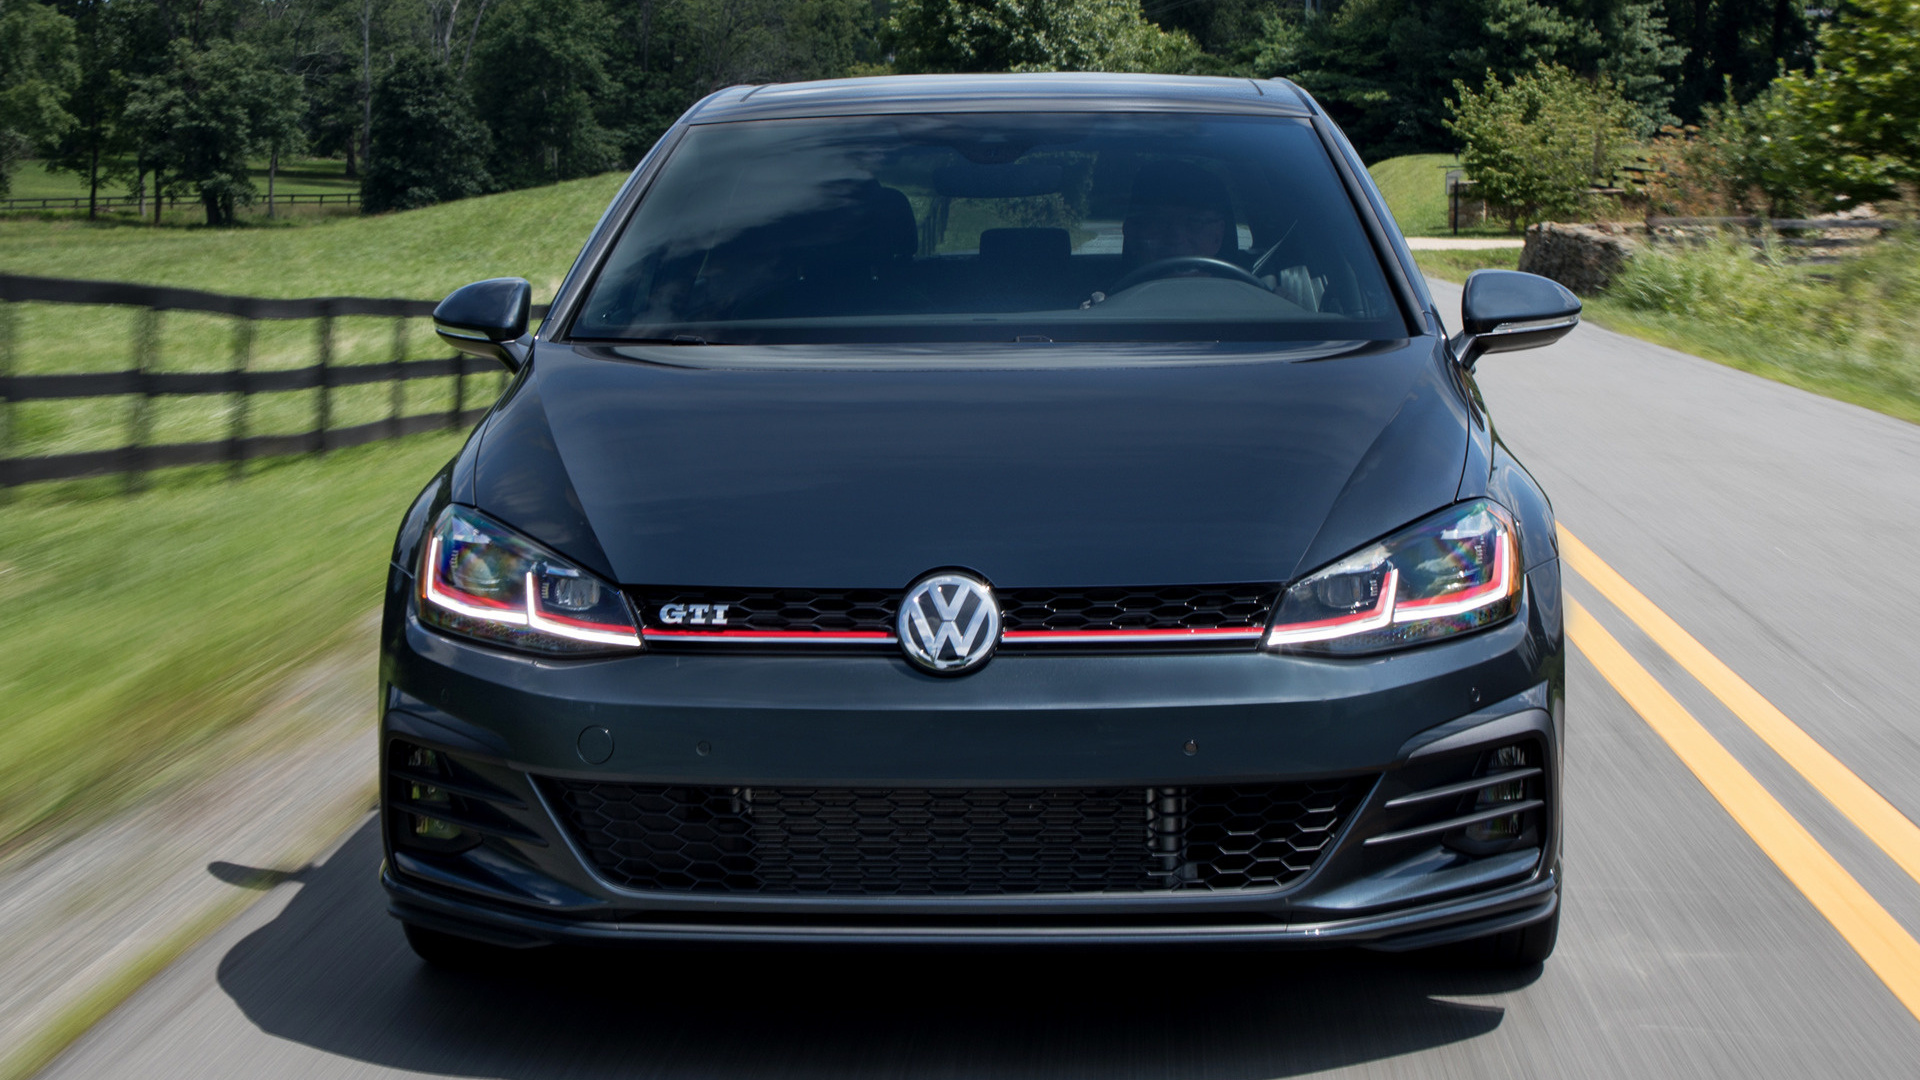 Performance Chrysler Jeep Dodge >> 2018 Volkswagen Golf GTI 5-door (US) - Wallpapers and HD Images | Car Pixel